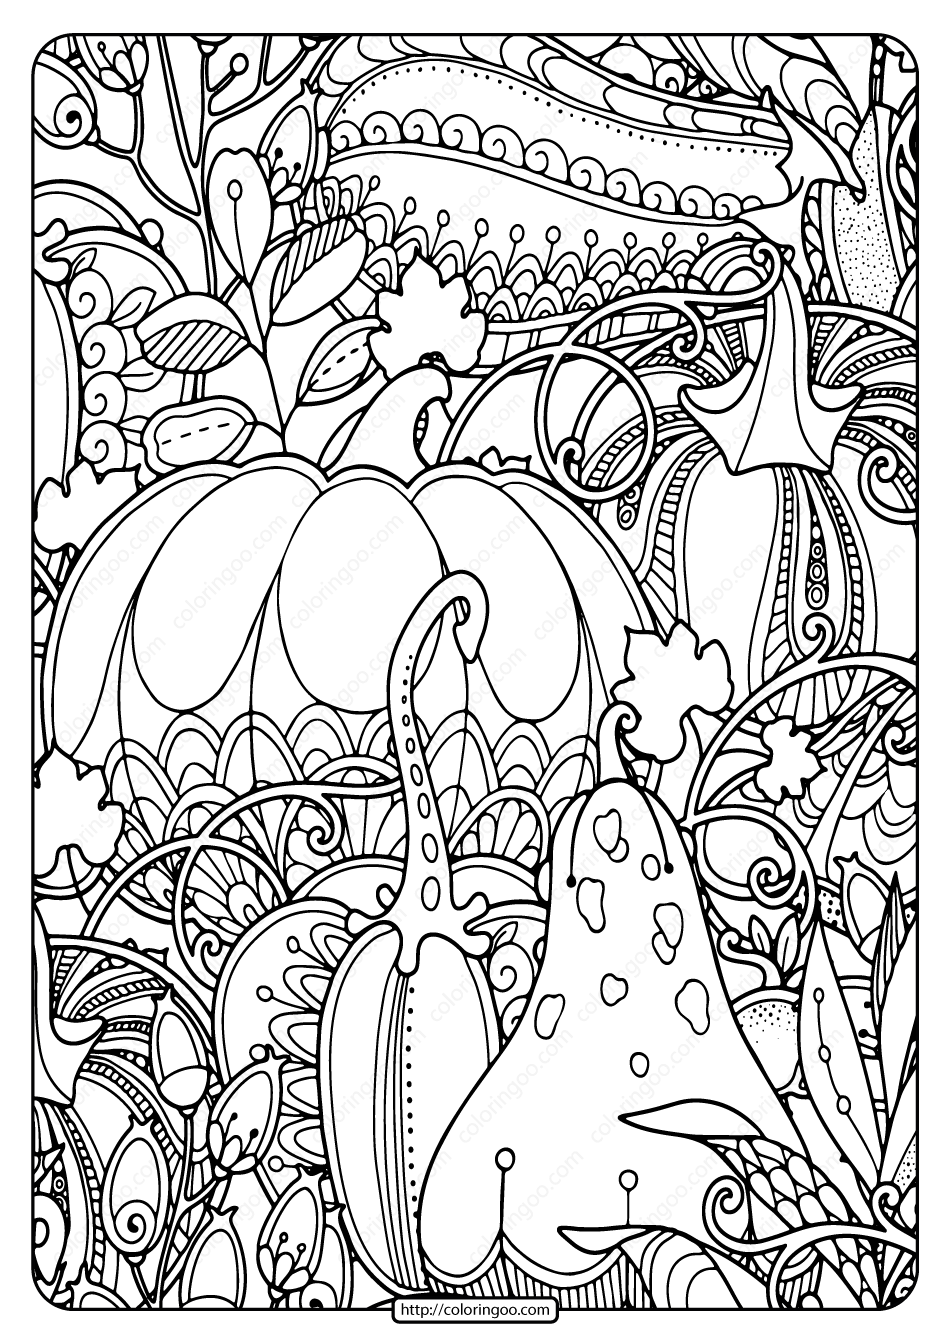 Printable Pumpkins Berries and Leaves Coloring Page